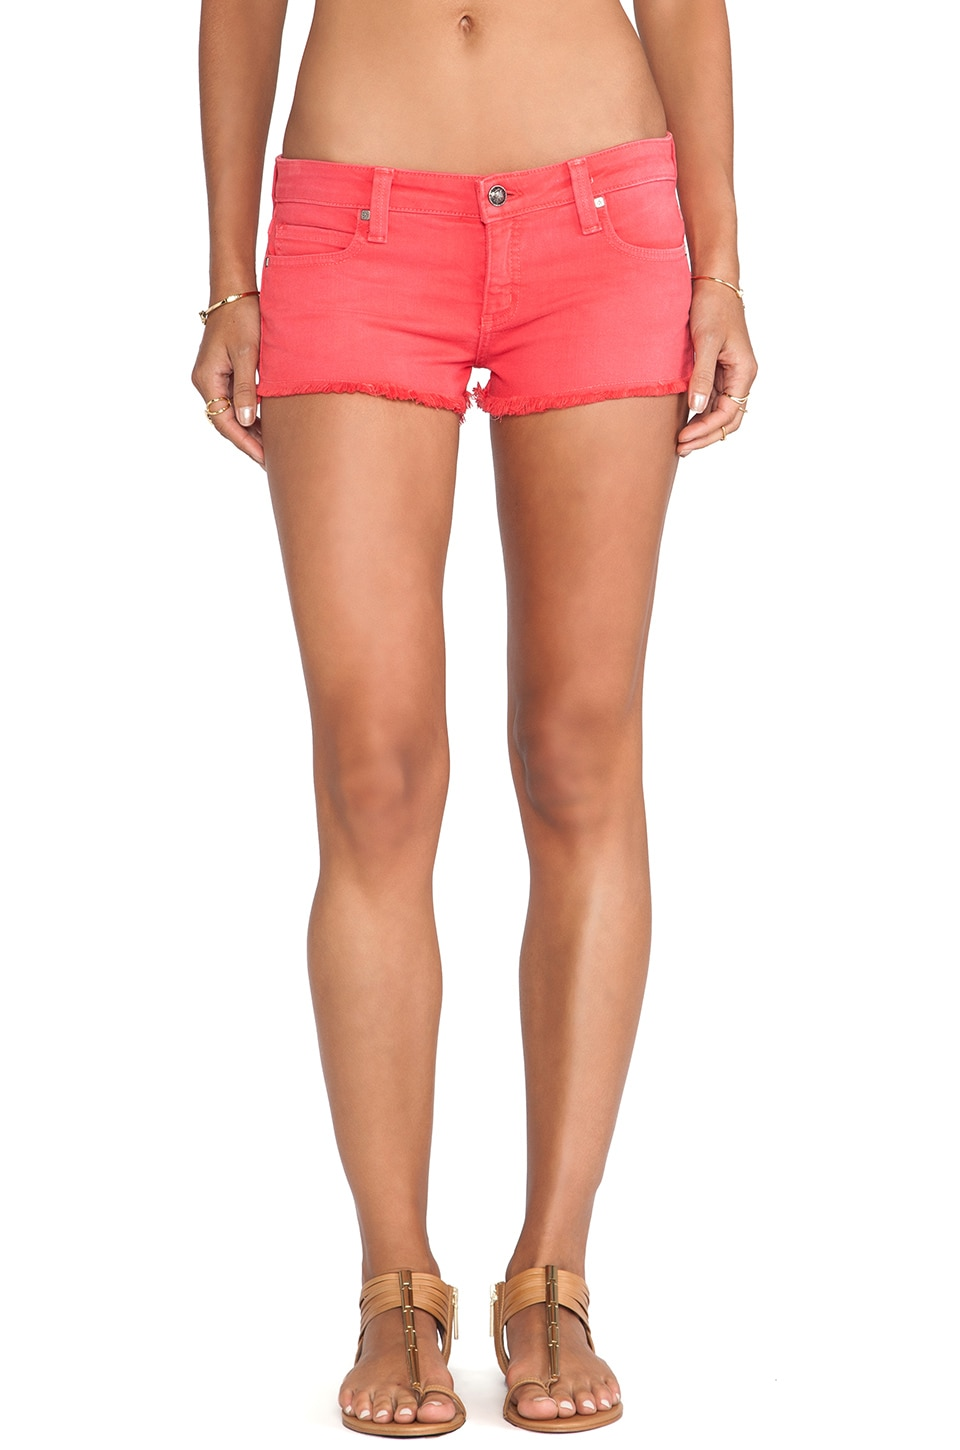 Frankie B. Jeans Summer Short in Red